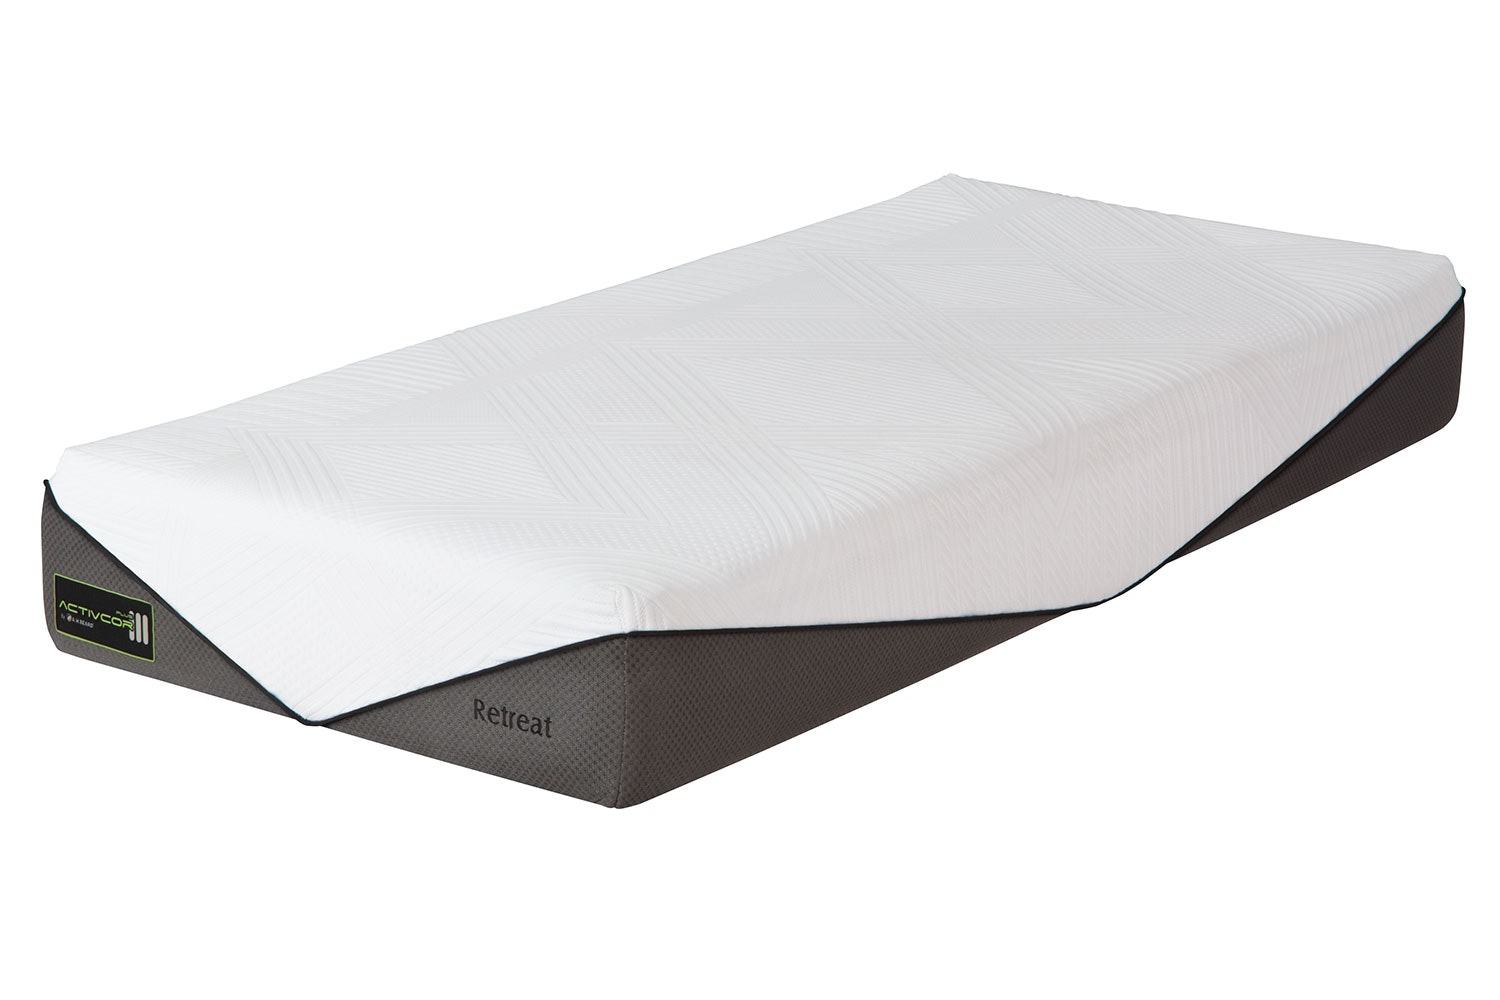 Activcor Retreat Long Single Mattress by A.H. Beard